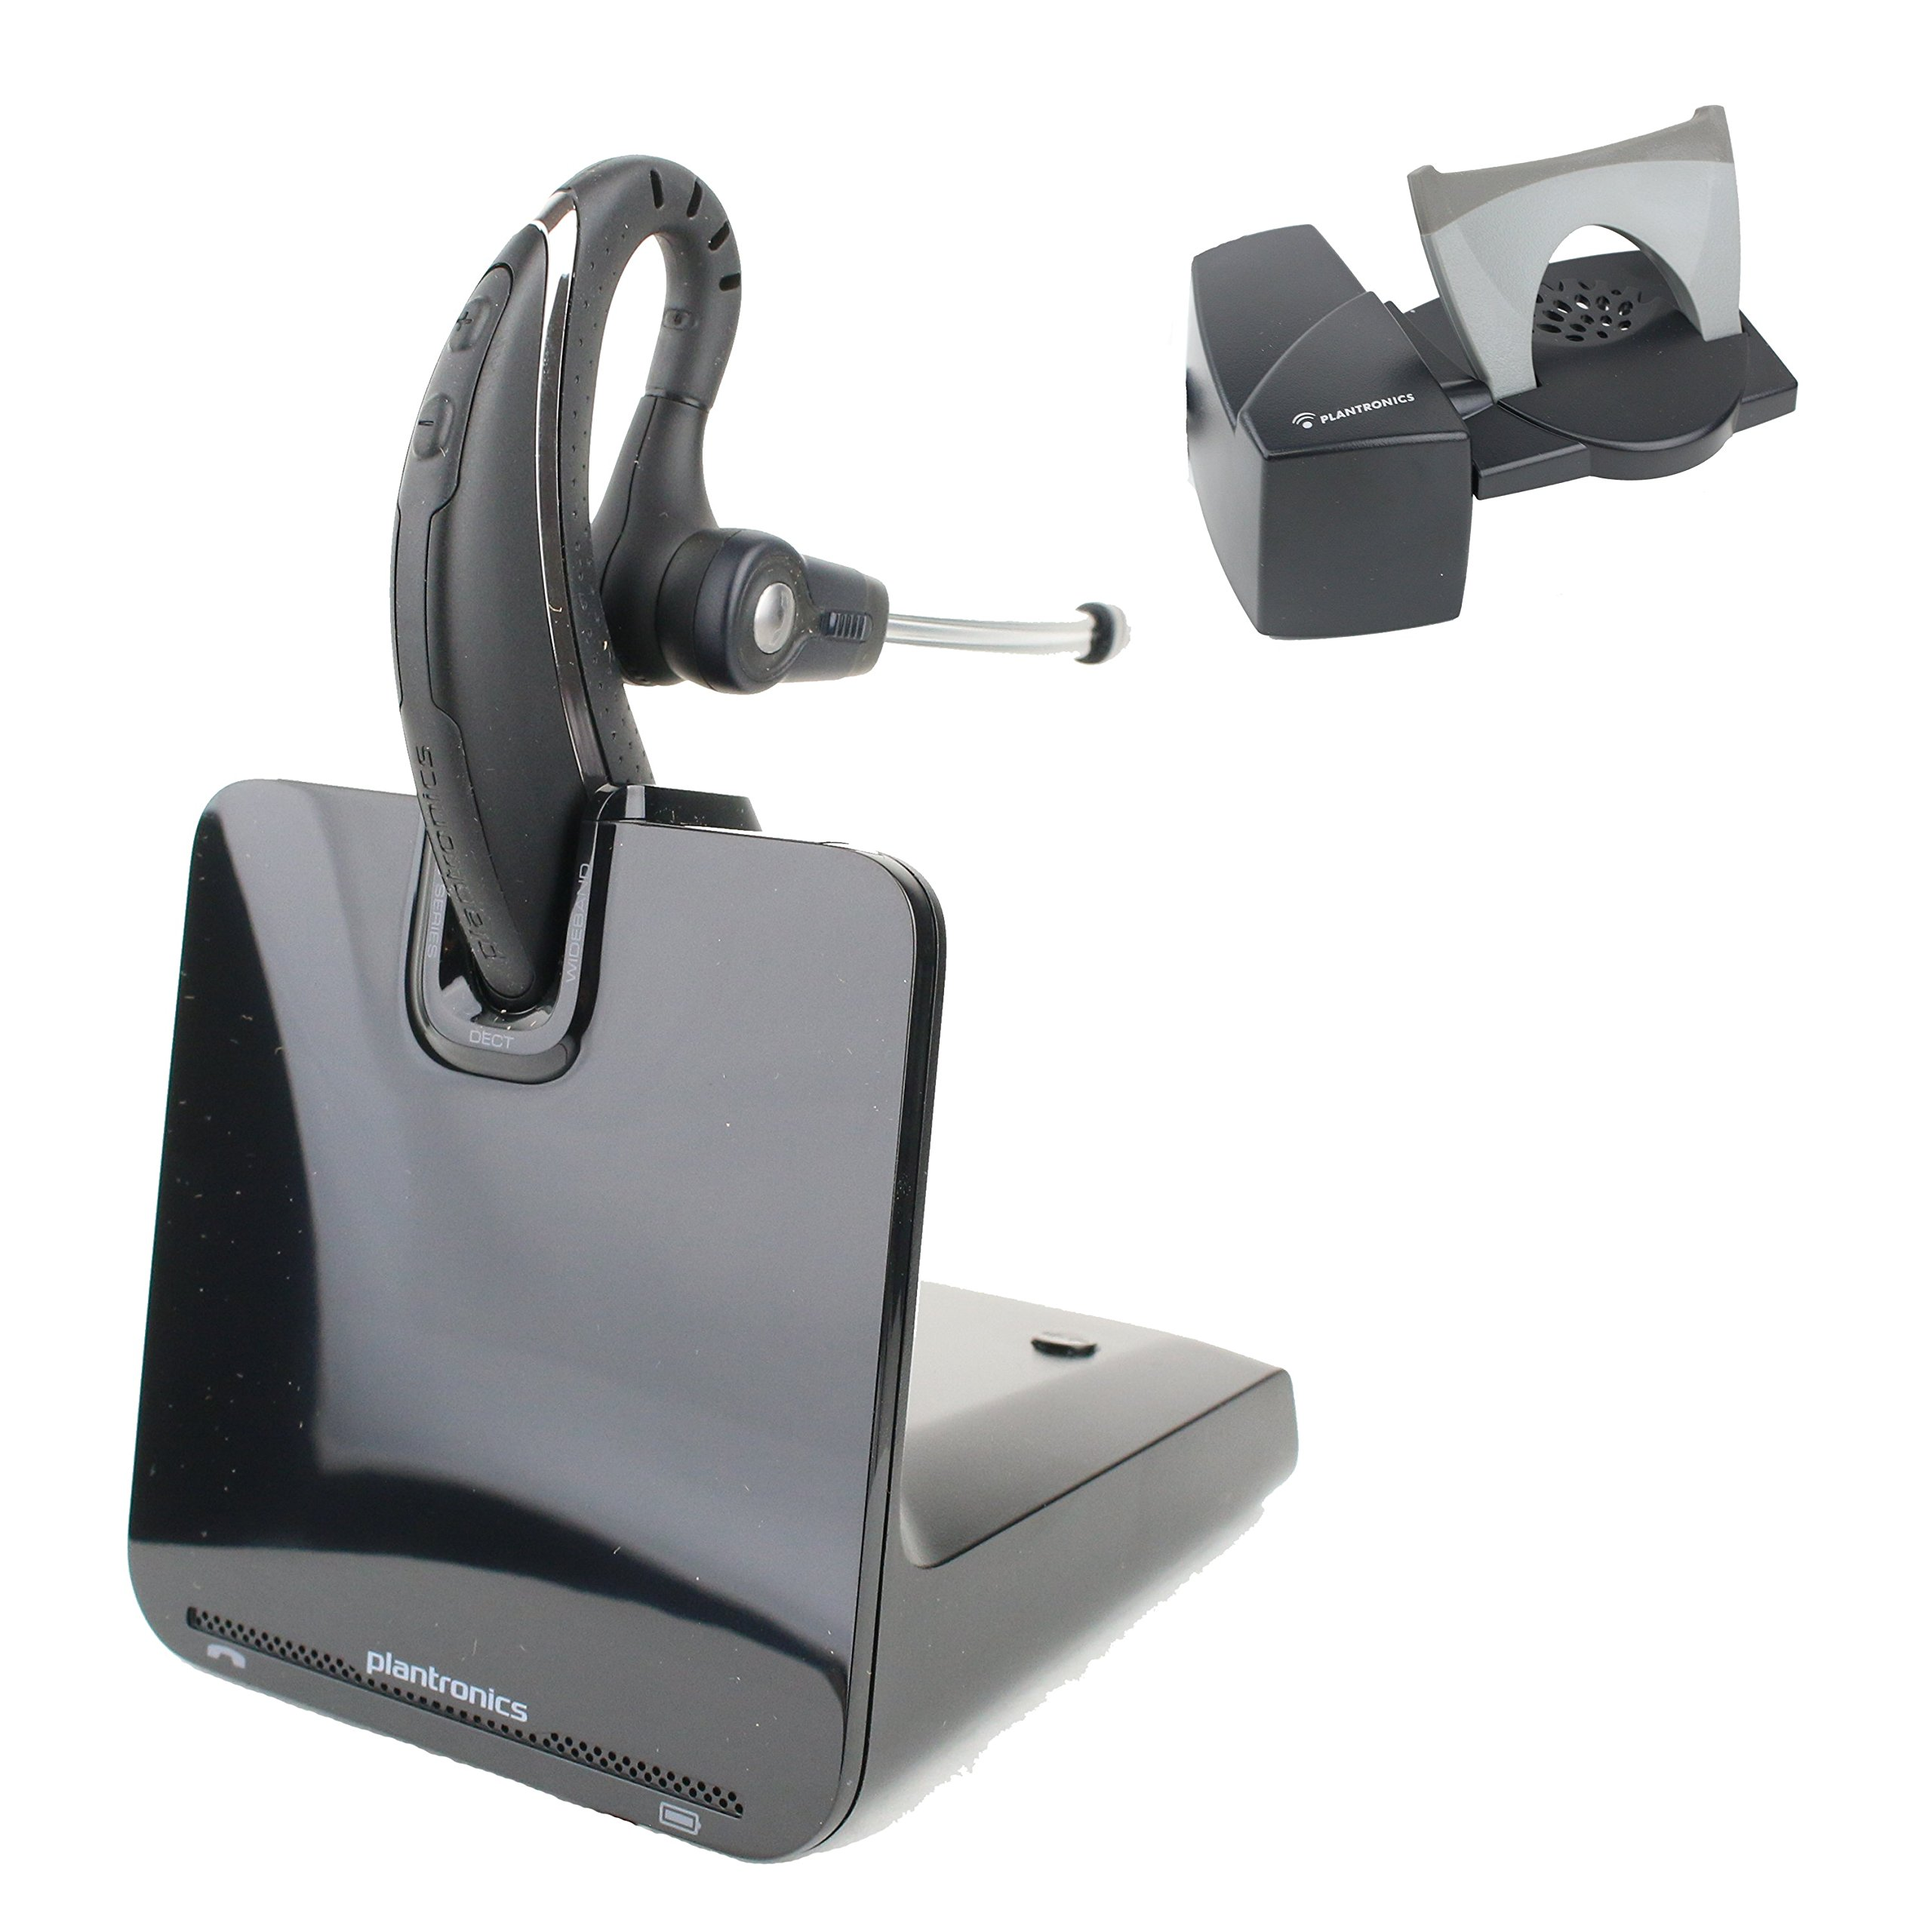 Plantronics CS530 Office Wireless Headset With HL10 Handset Lifter (Certified Refurbished)